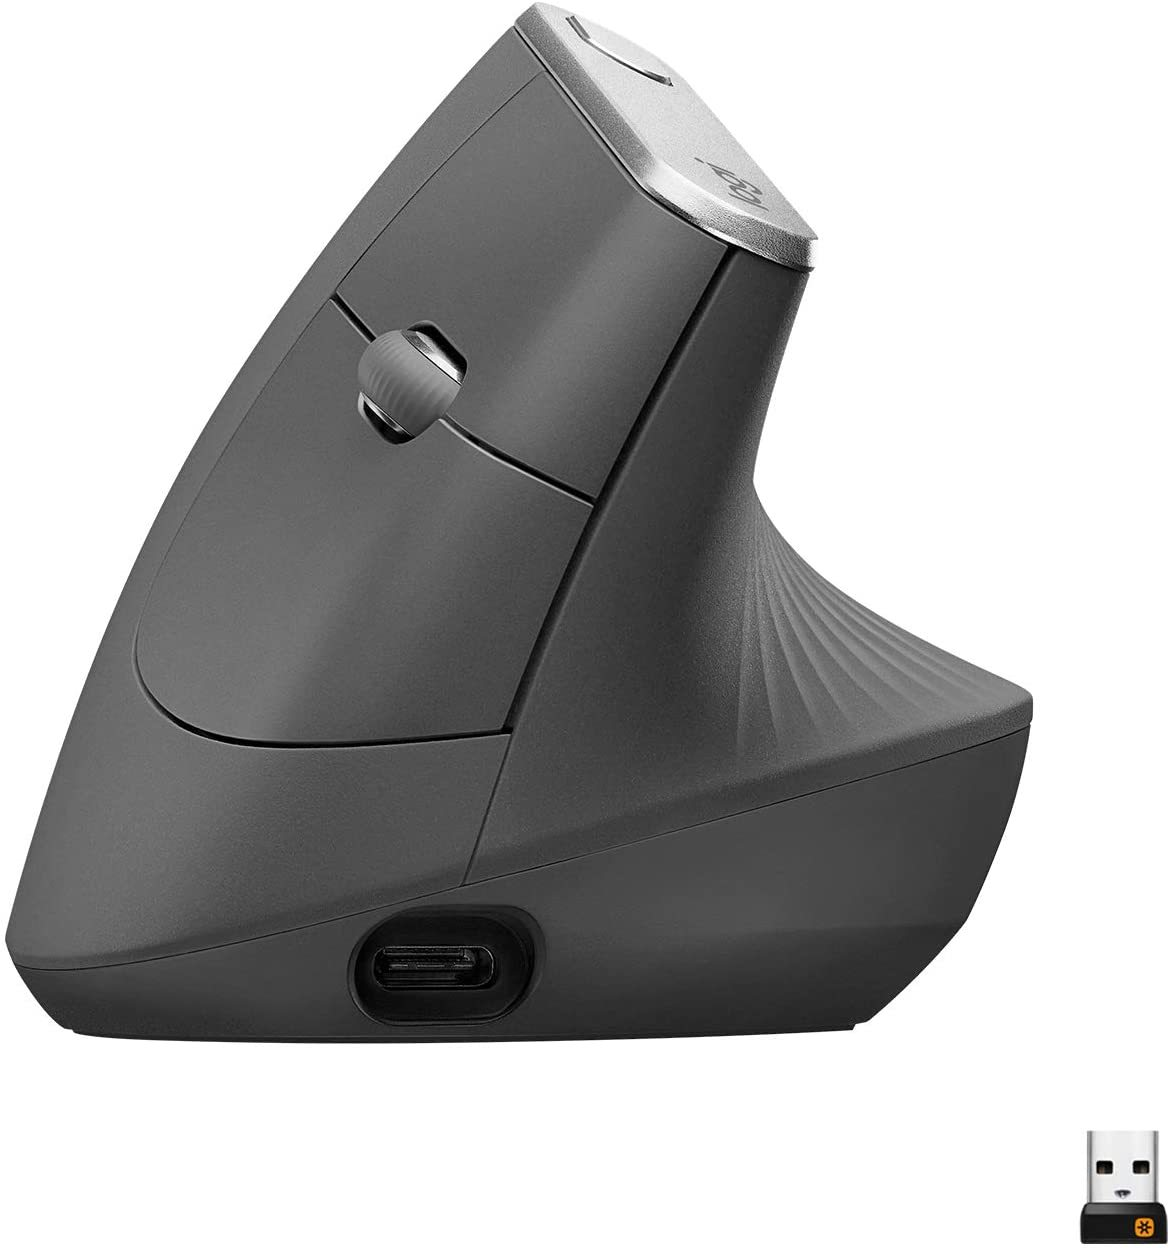 MX Vertical Wireless Mouse – Advanced Ergonomic Design Reduces Muscle Strain, Control and Move Content Between 3 Windows and Apple Computers (Bluetooth or USB), Rechargeable, Graphite